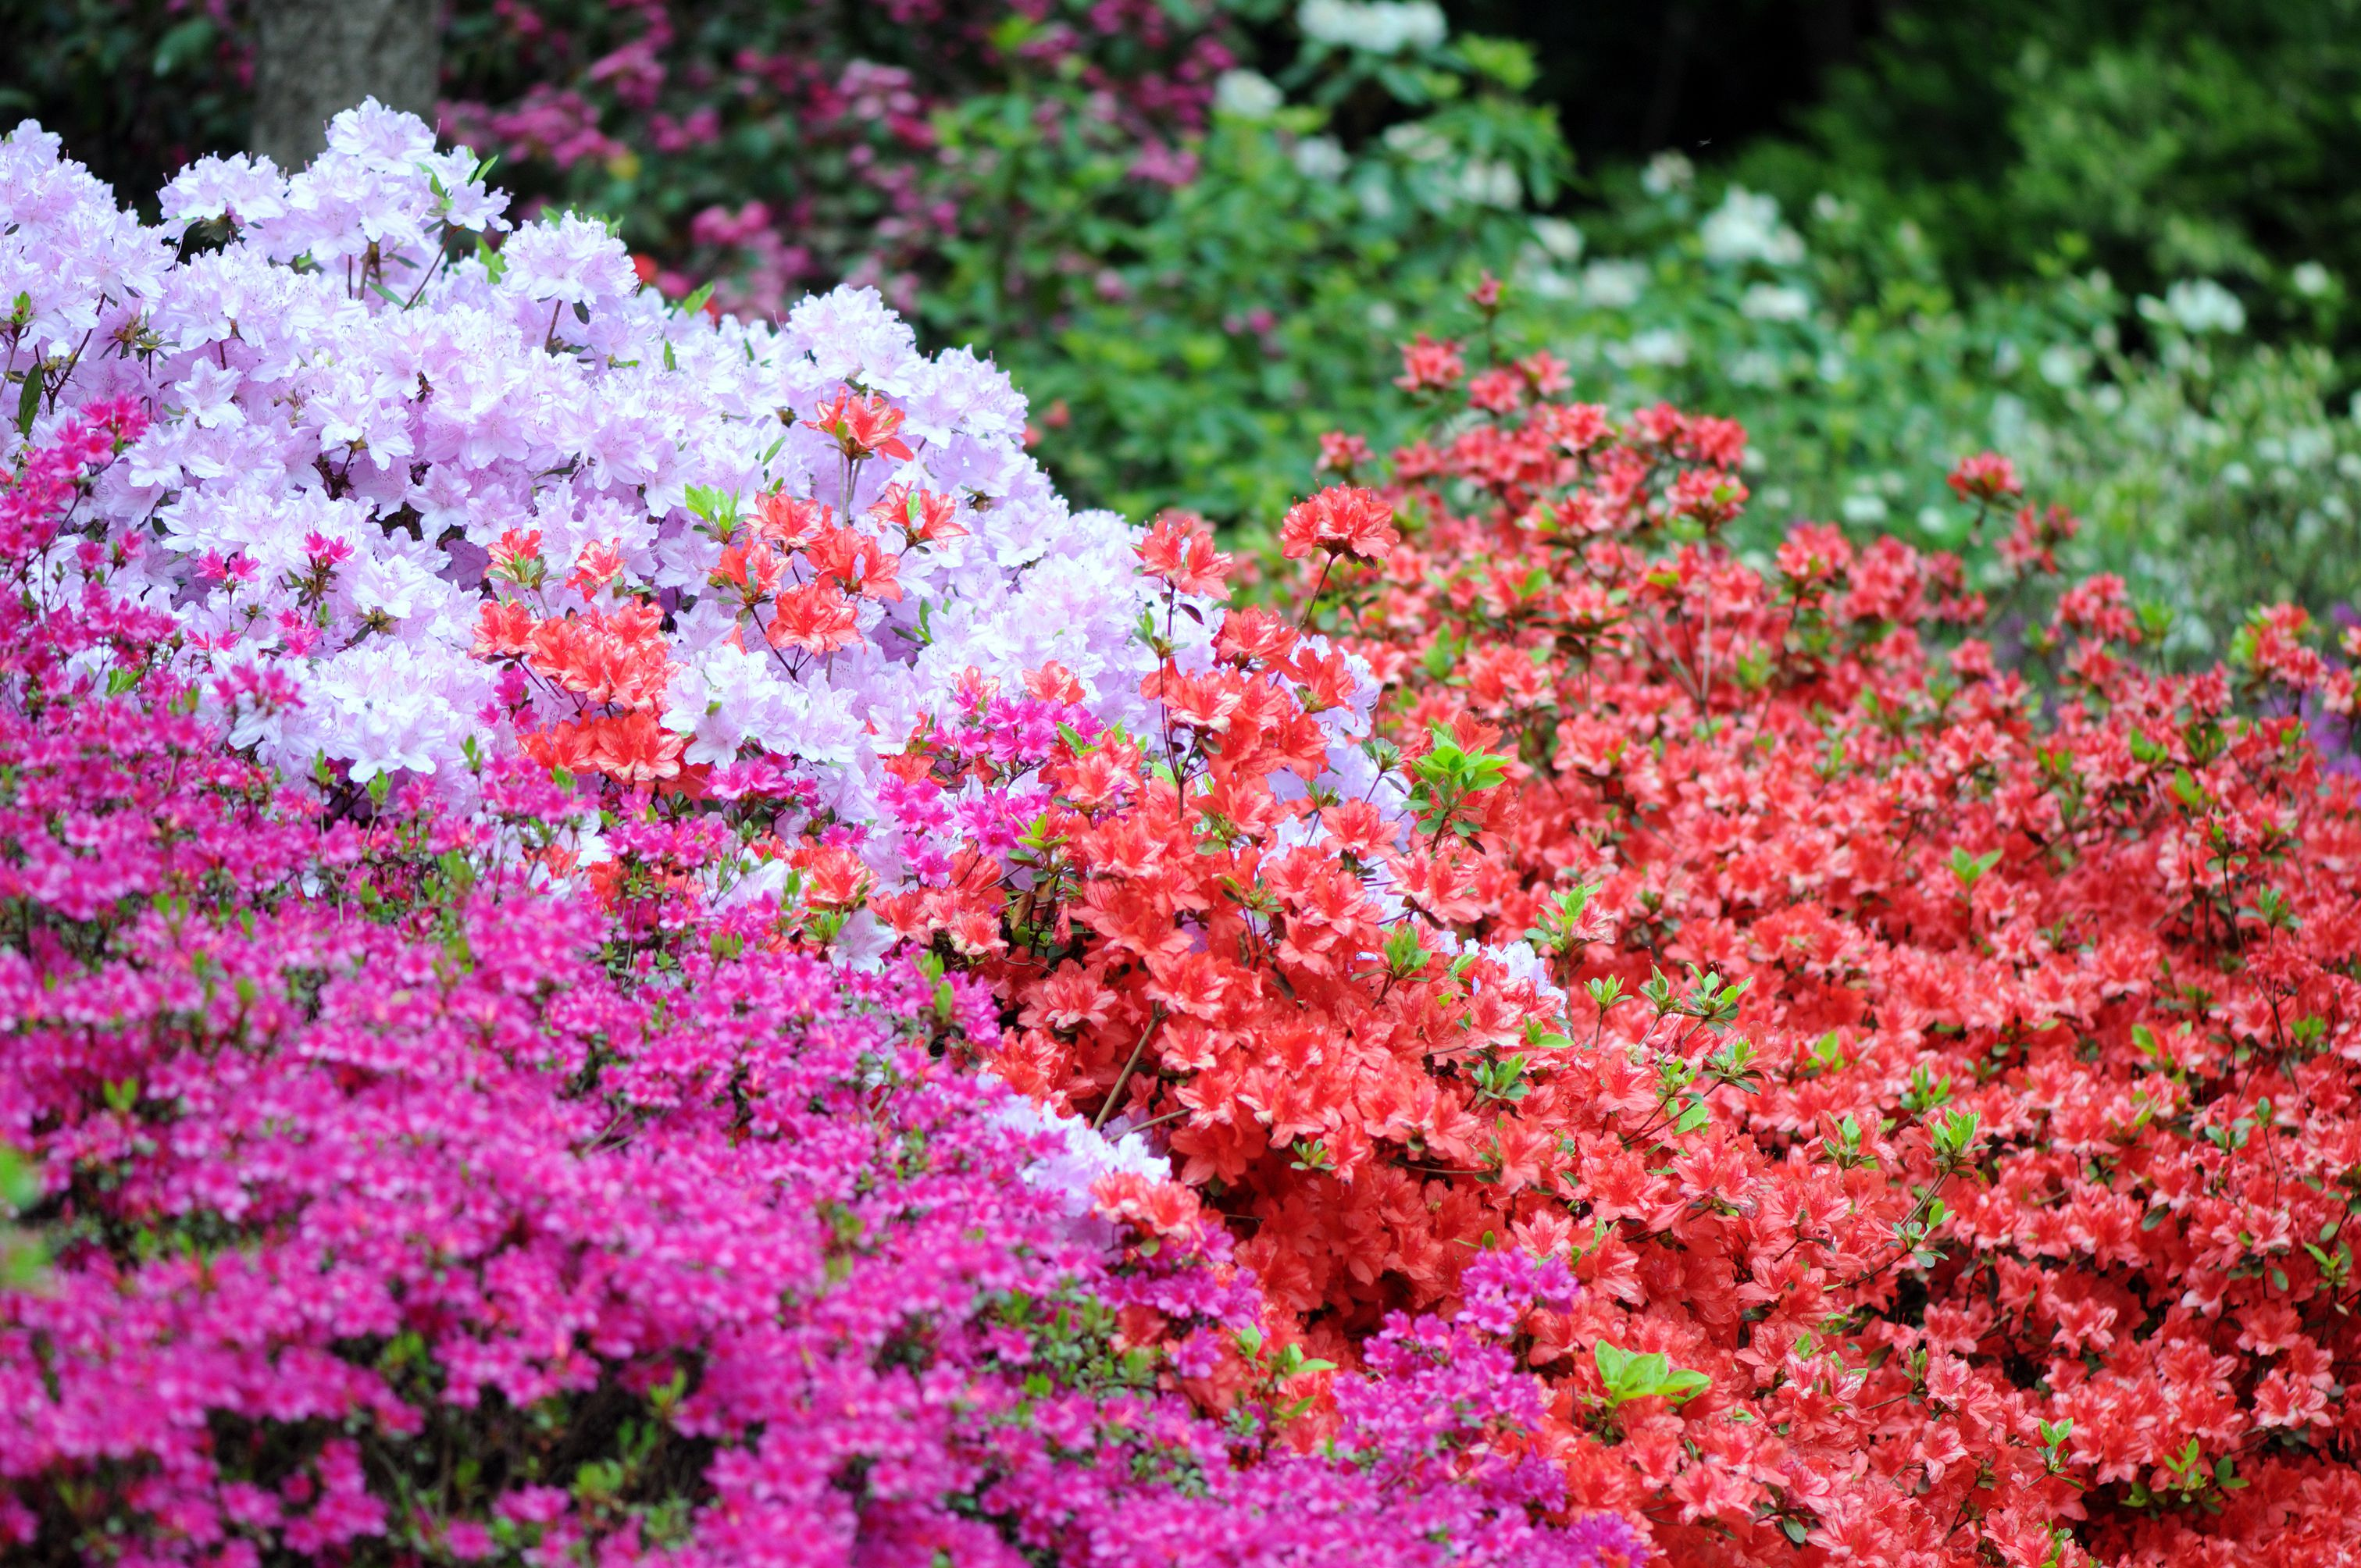 20 Flowering Shrubs to Add Color to Your Garden